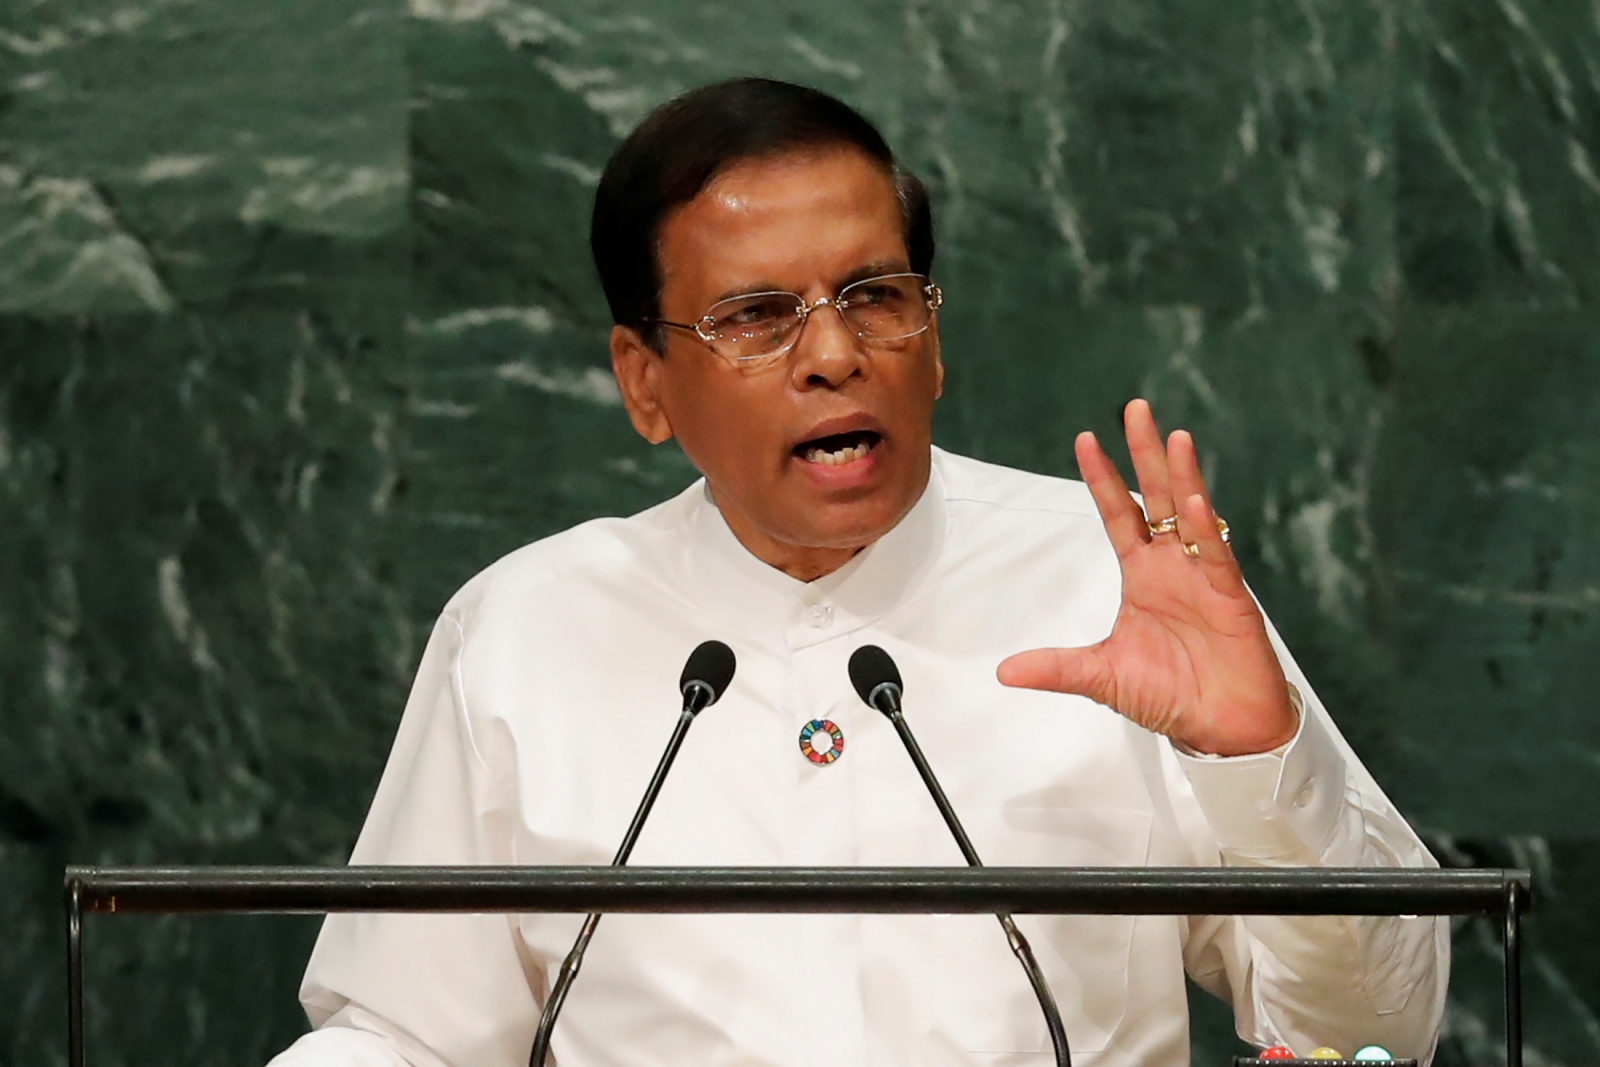 Sri Lanka Diplomats urge govt to take action against anti-Muslim attacks